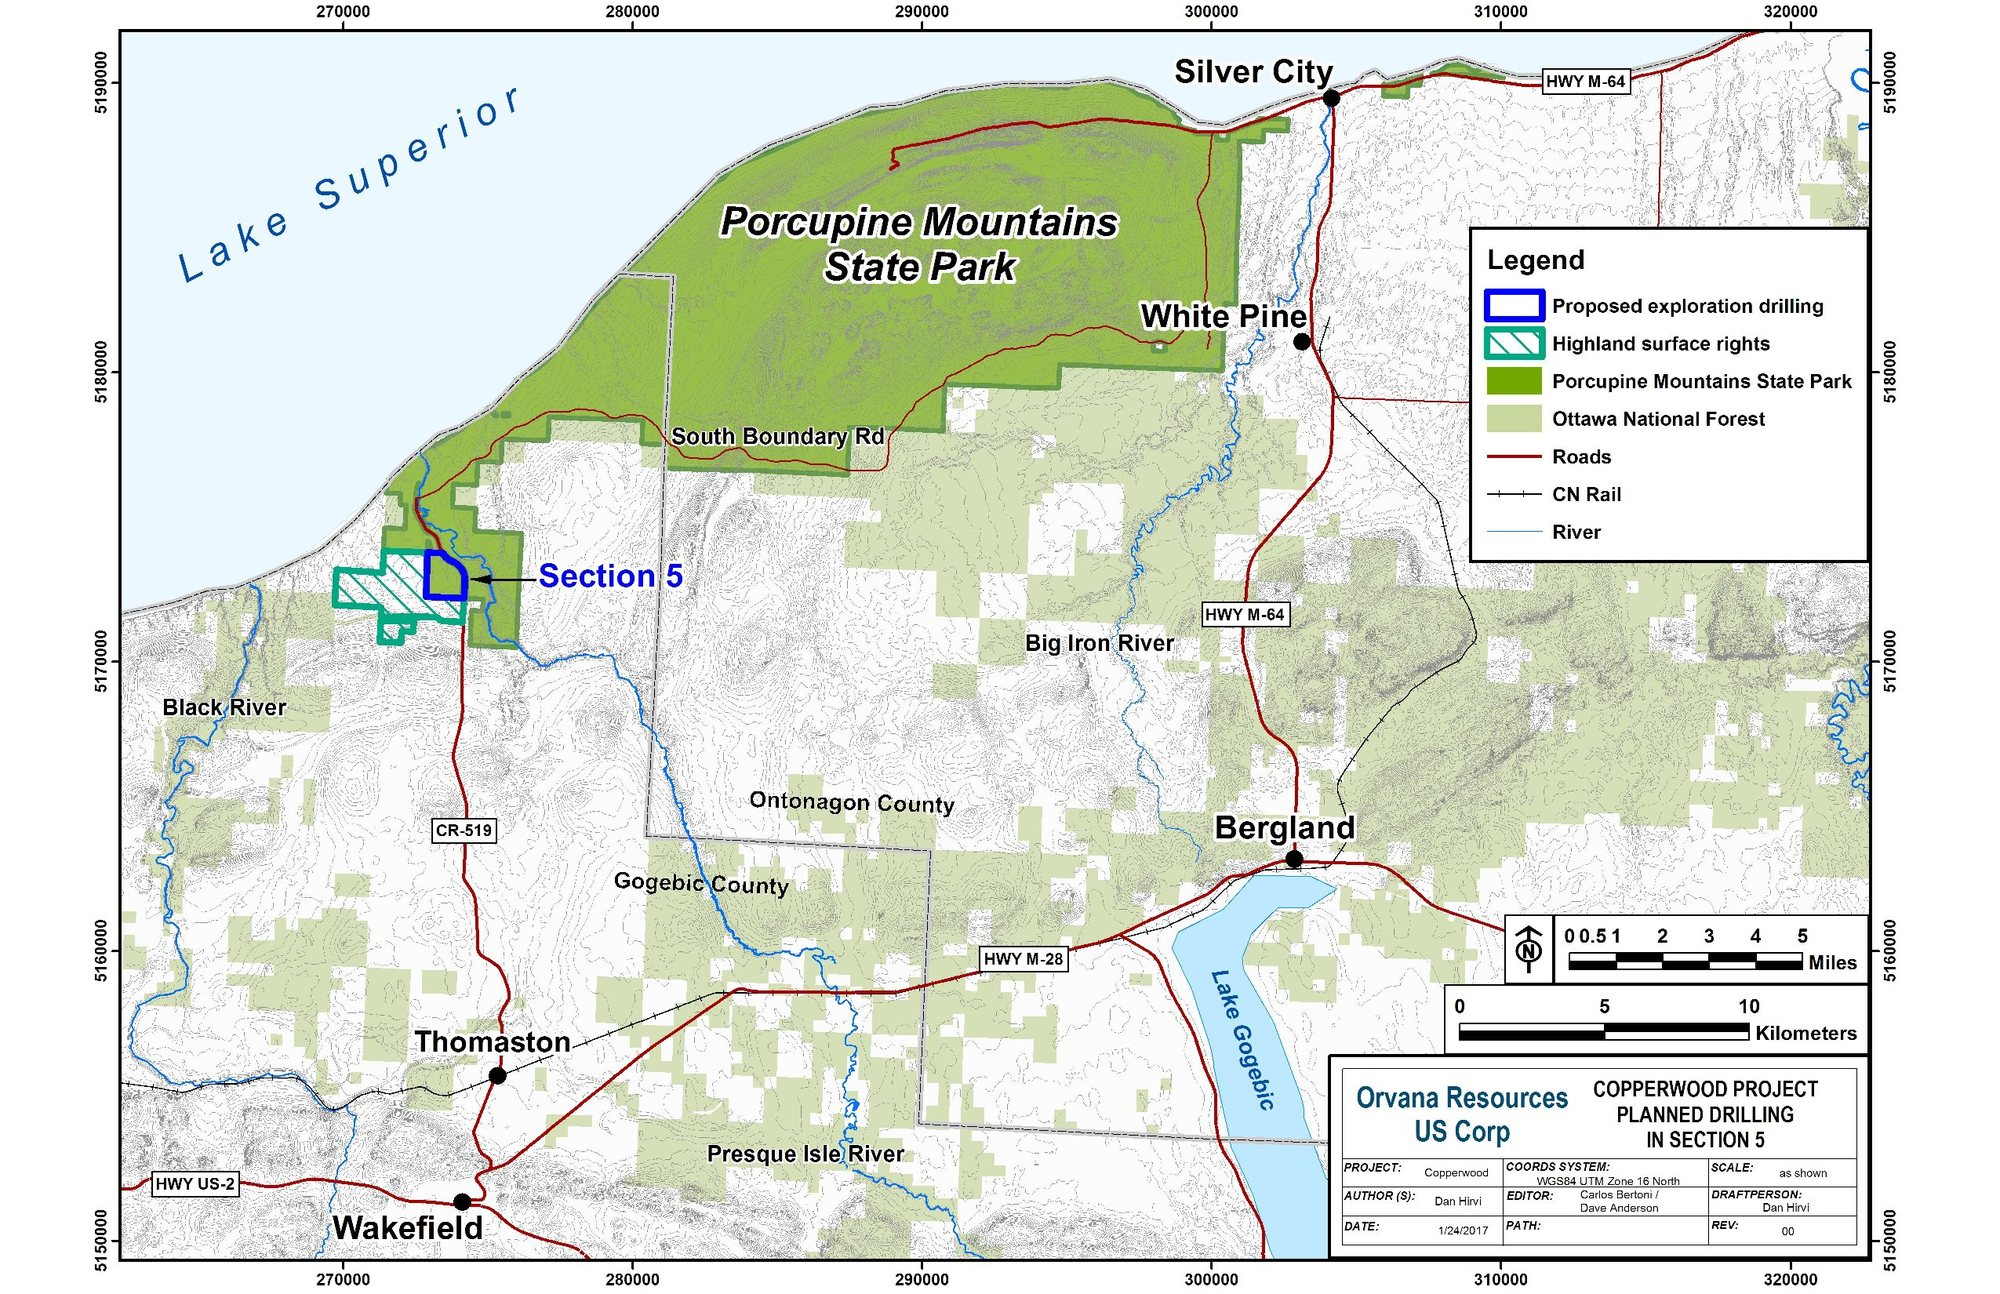 A map showing the location of the Highland Copper exploration at Porcupine Mountains Wilderness State Park.